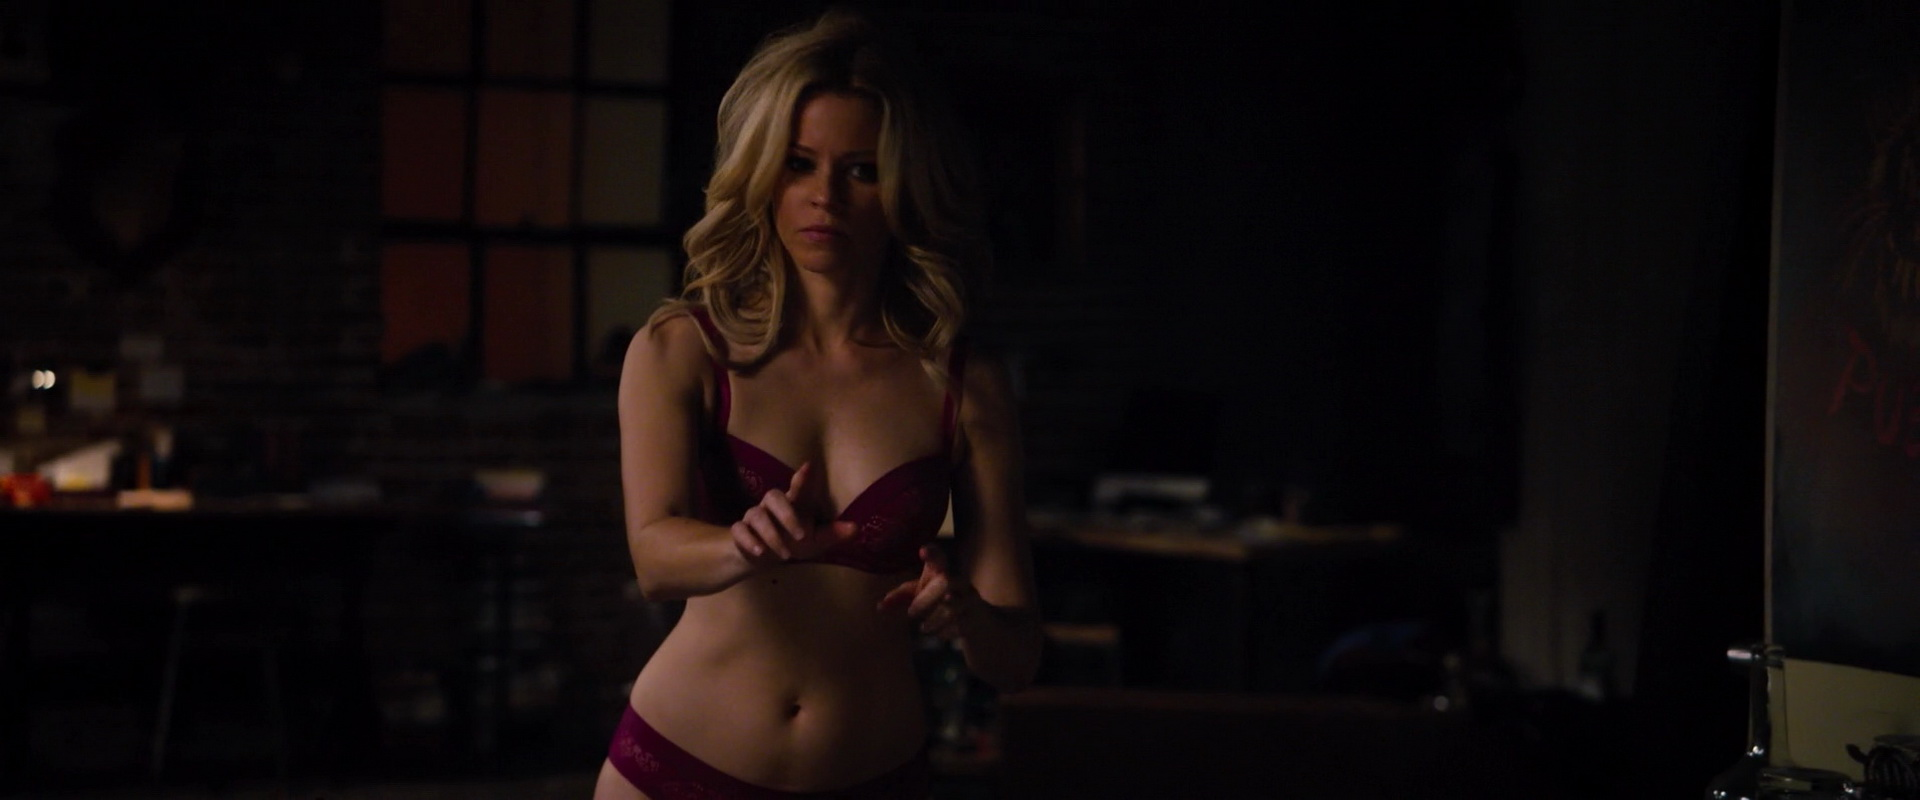 Share Elizabeth banks hottest nude pics phrase opinion